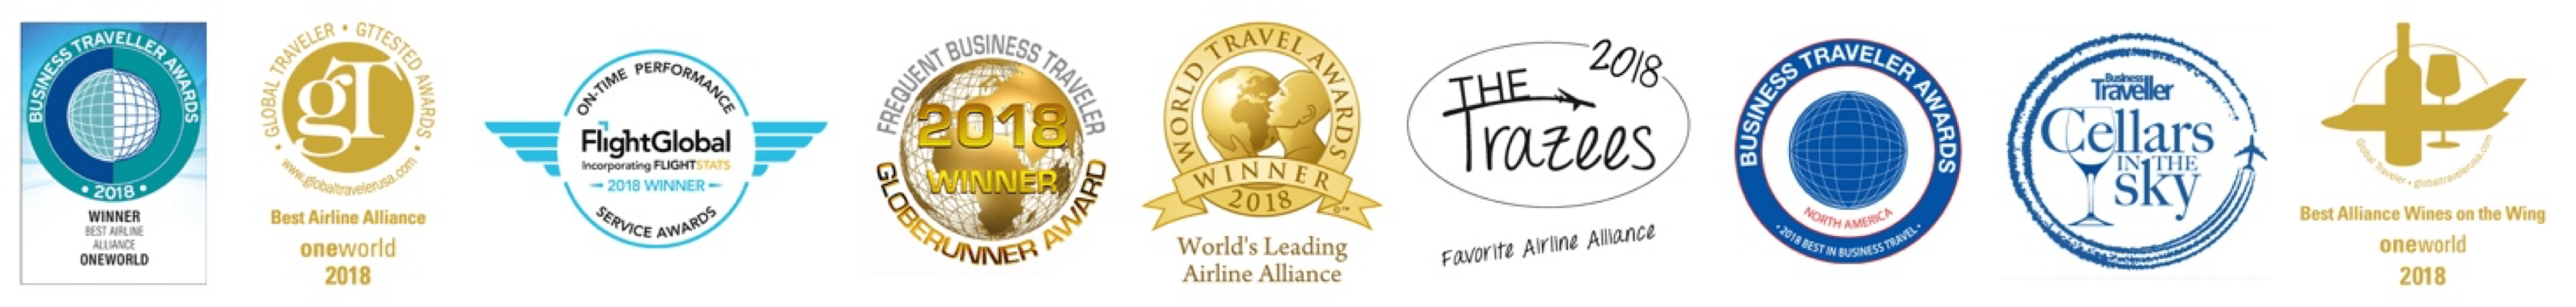 oneworld awards